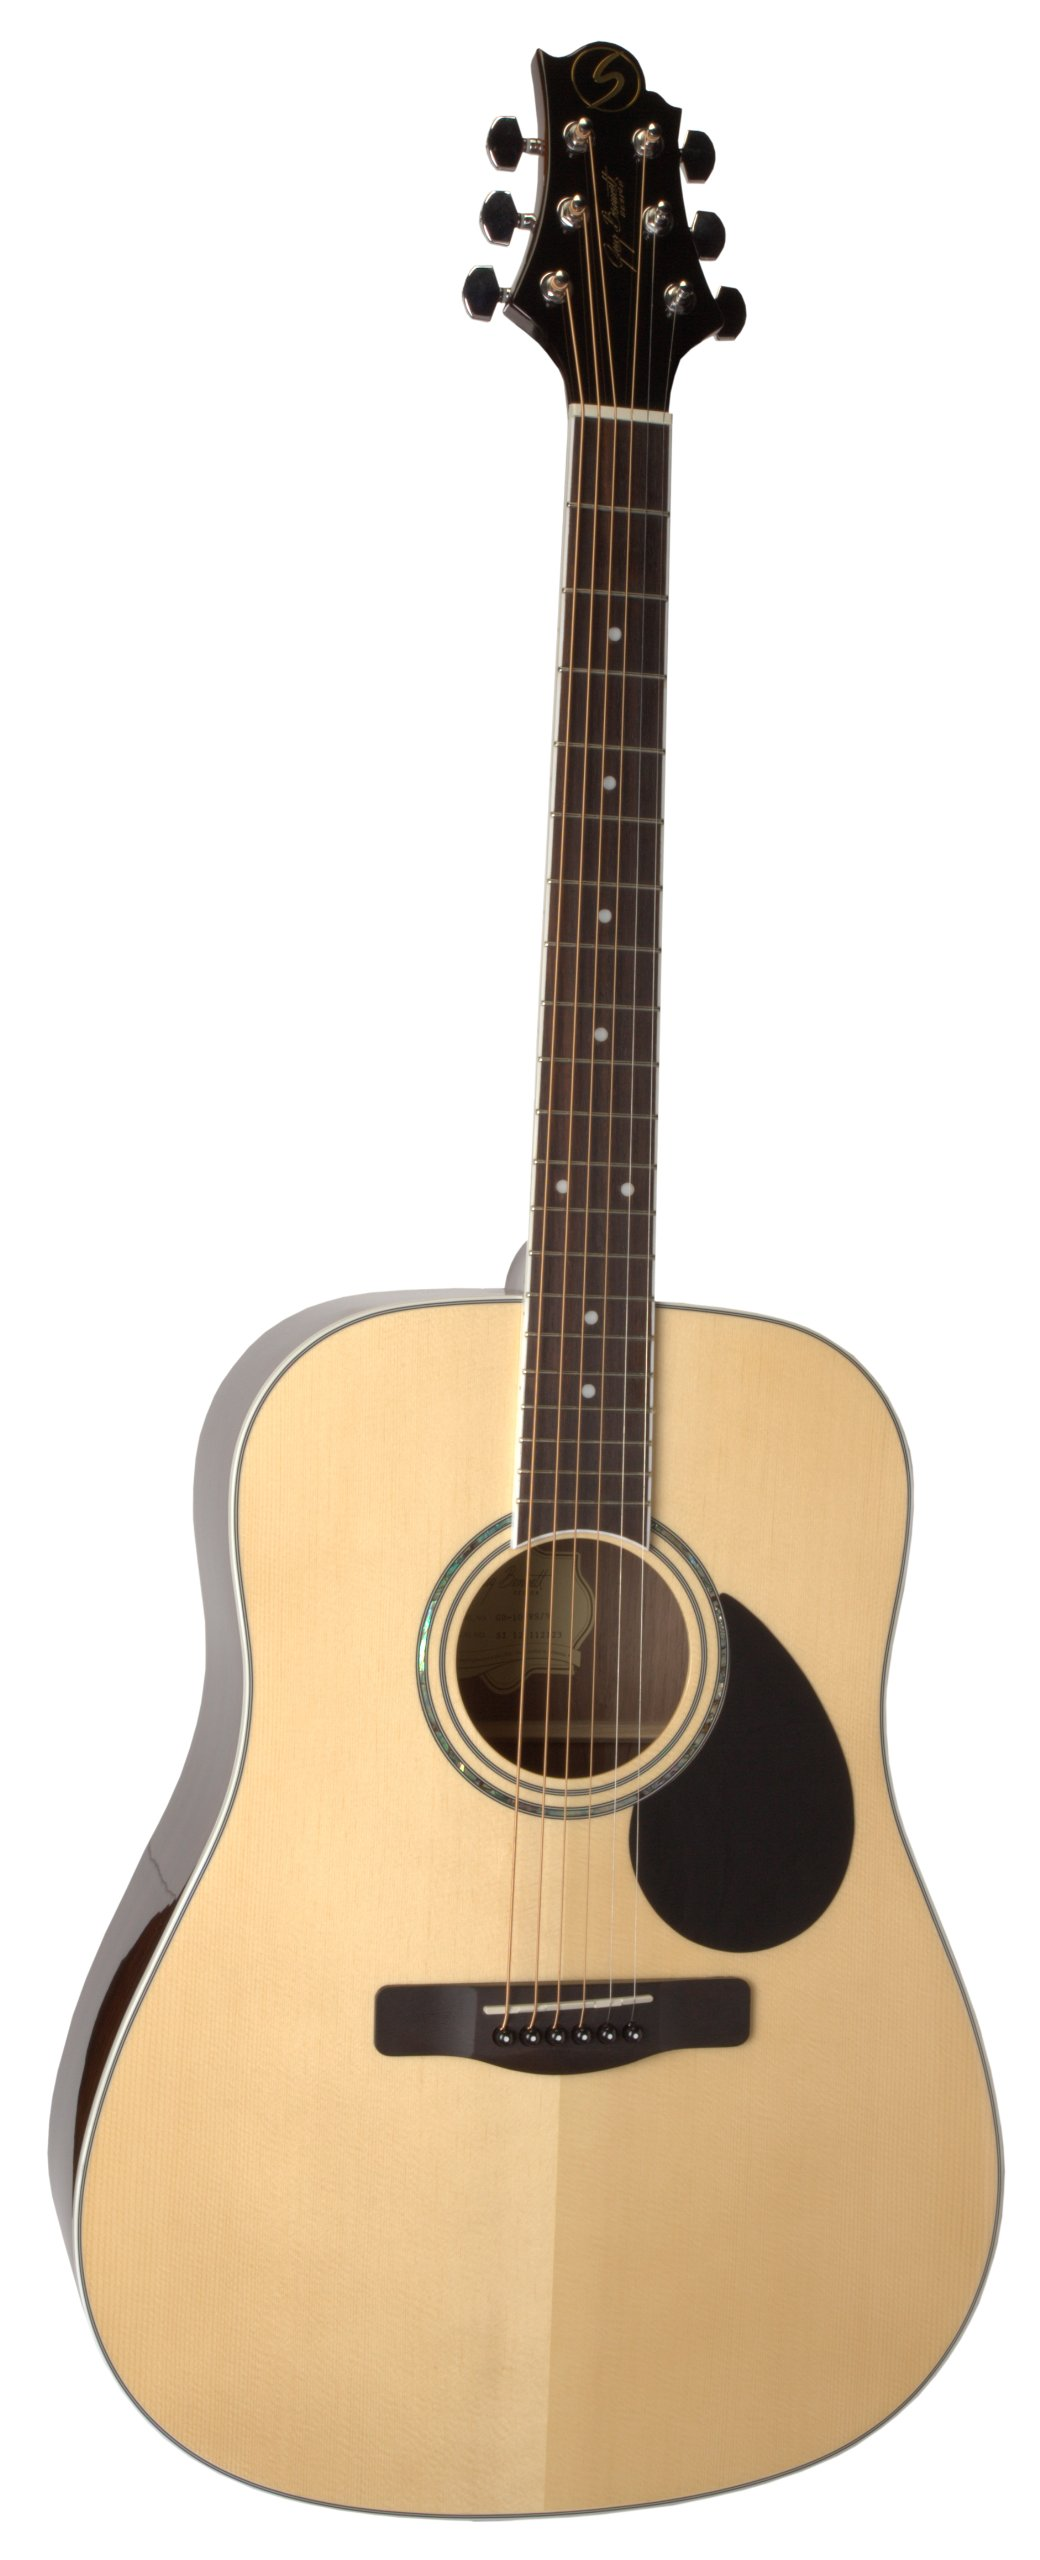 Samick Music G Series 100 GR100RS Dreadnought Acoustic Guitar, Natural by Samick